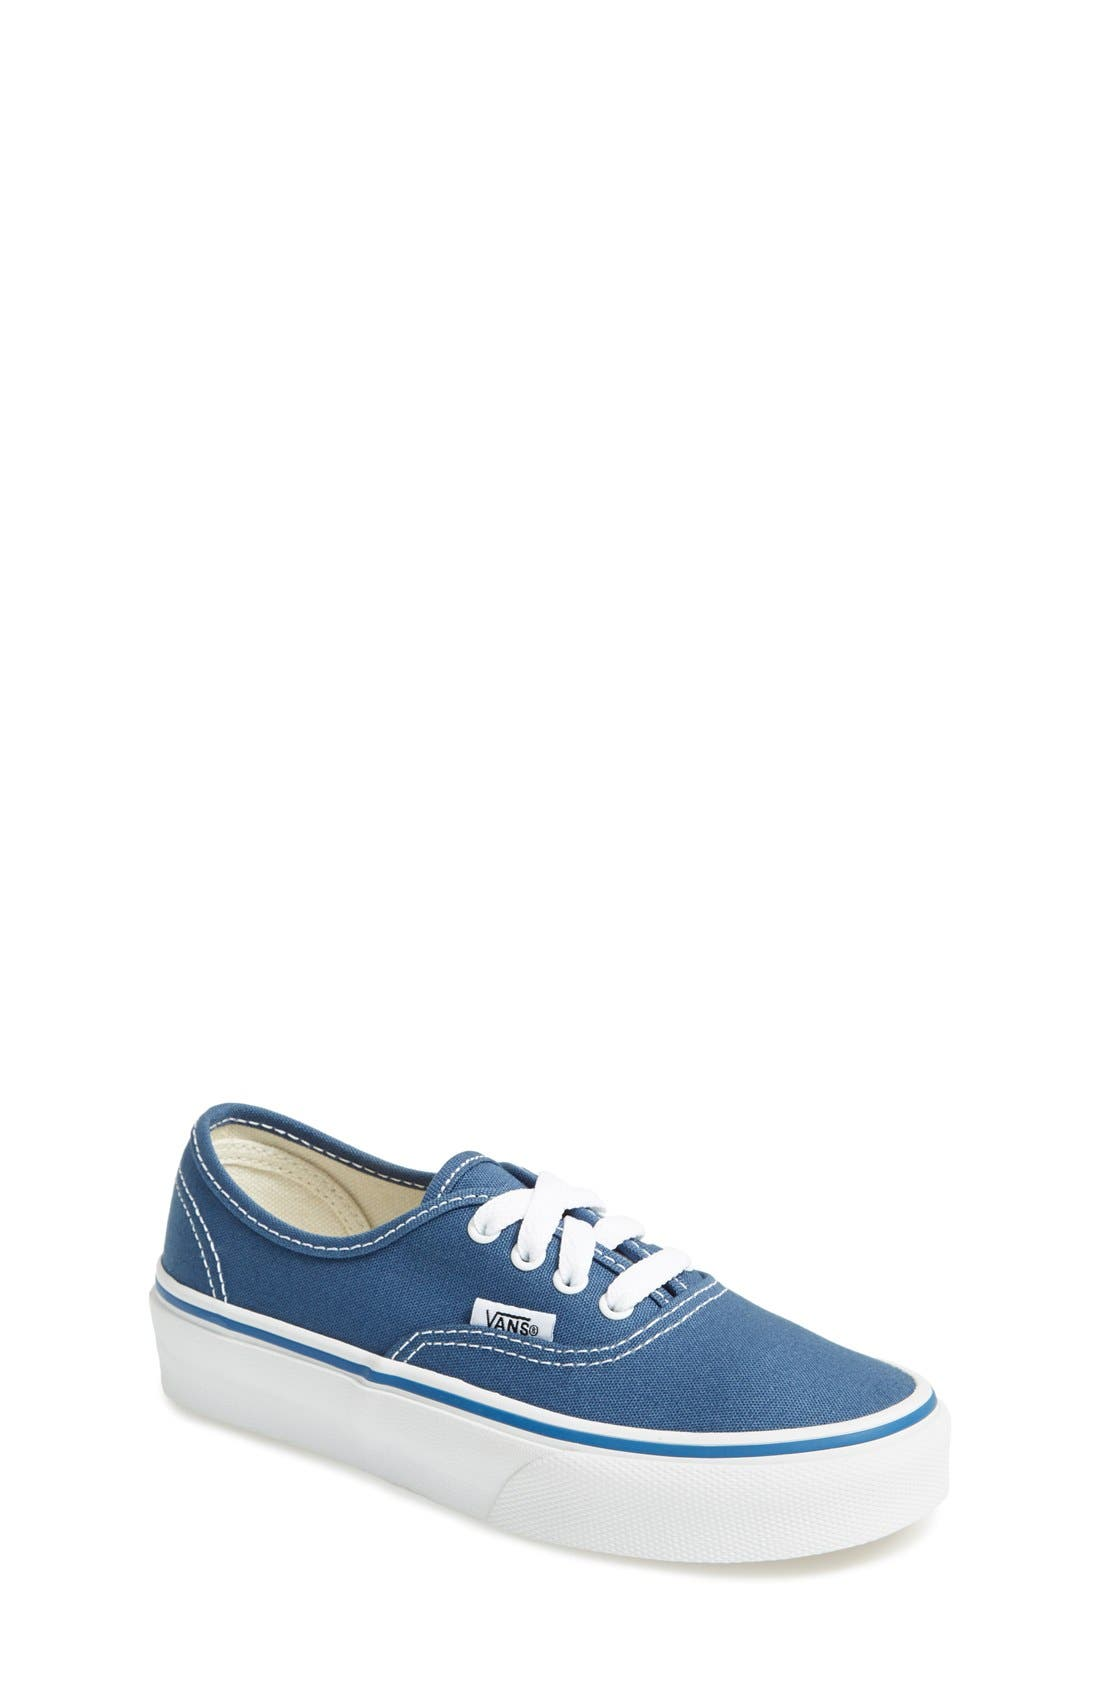 Alternate Image 1 Selected - Vans 'Authentic' Sneaker (Baby, Walker, Toddler, Little Kid & Big Kid)